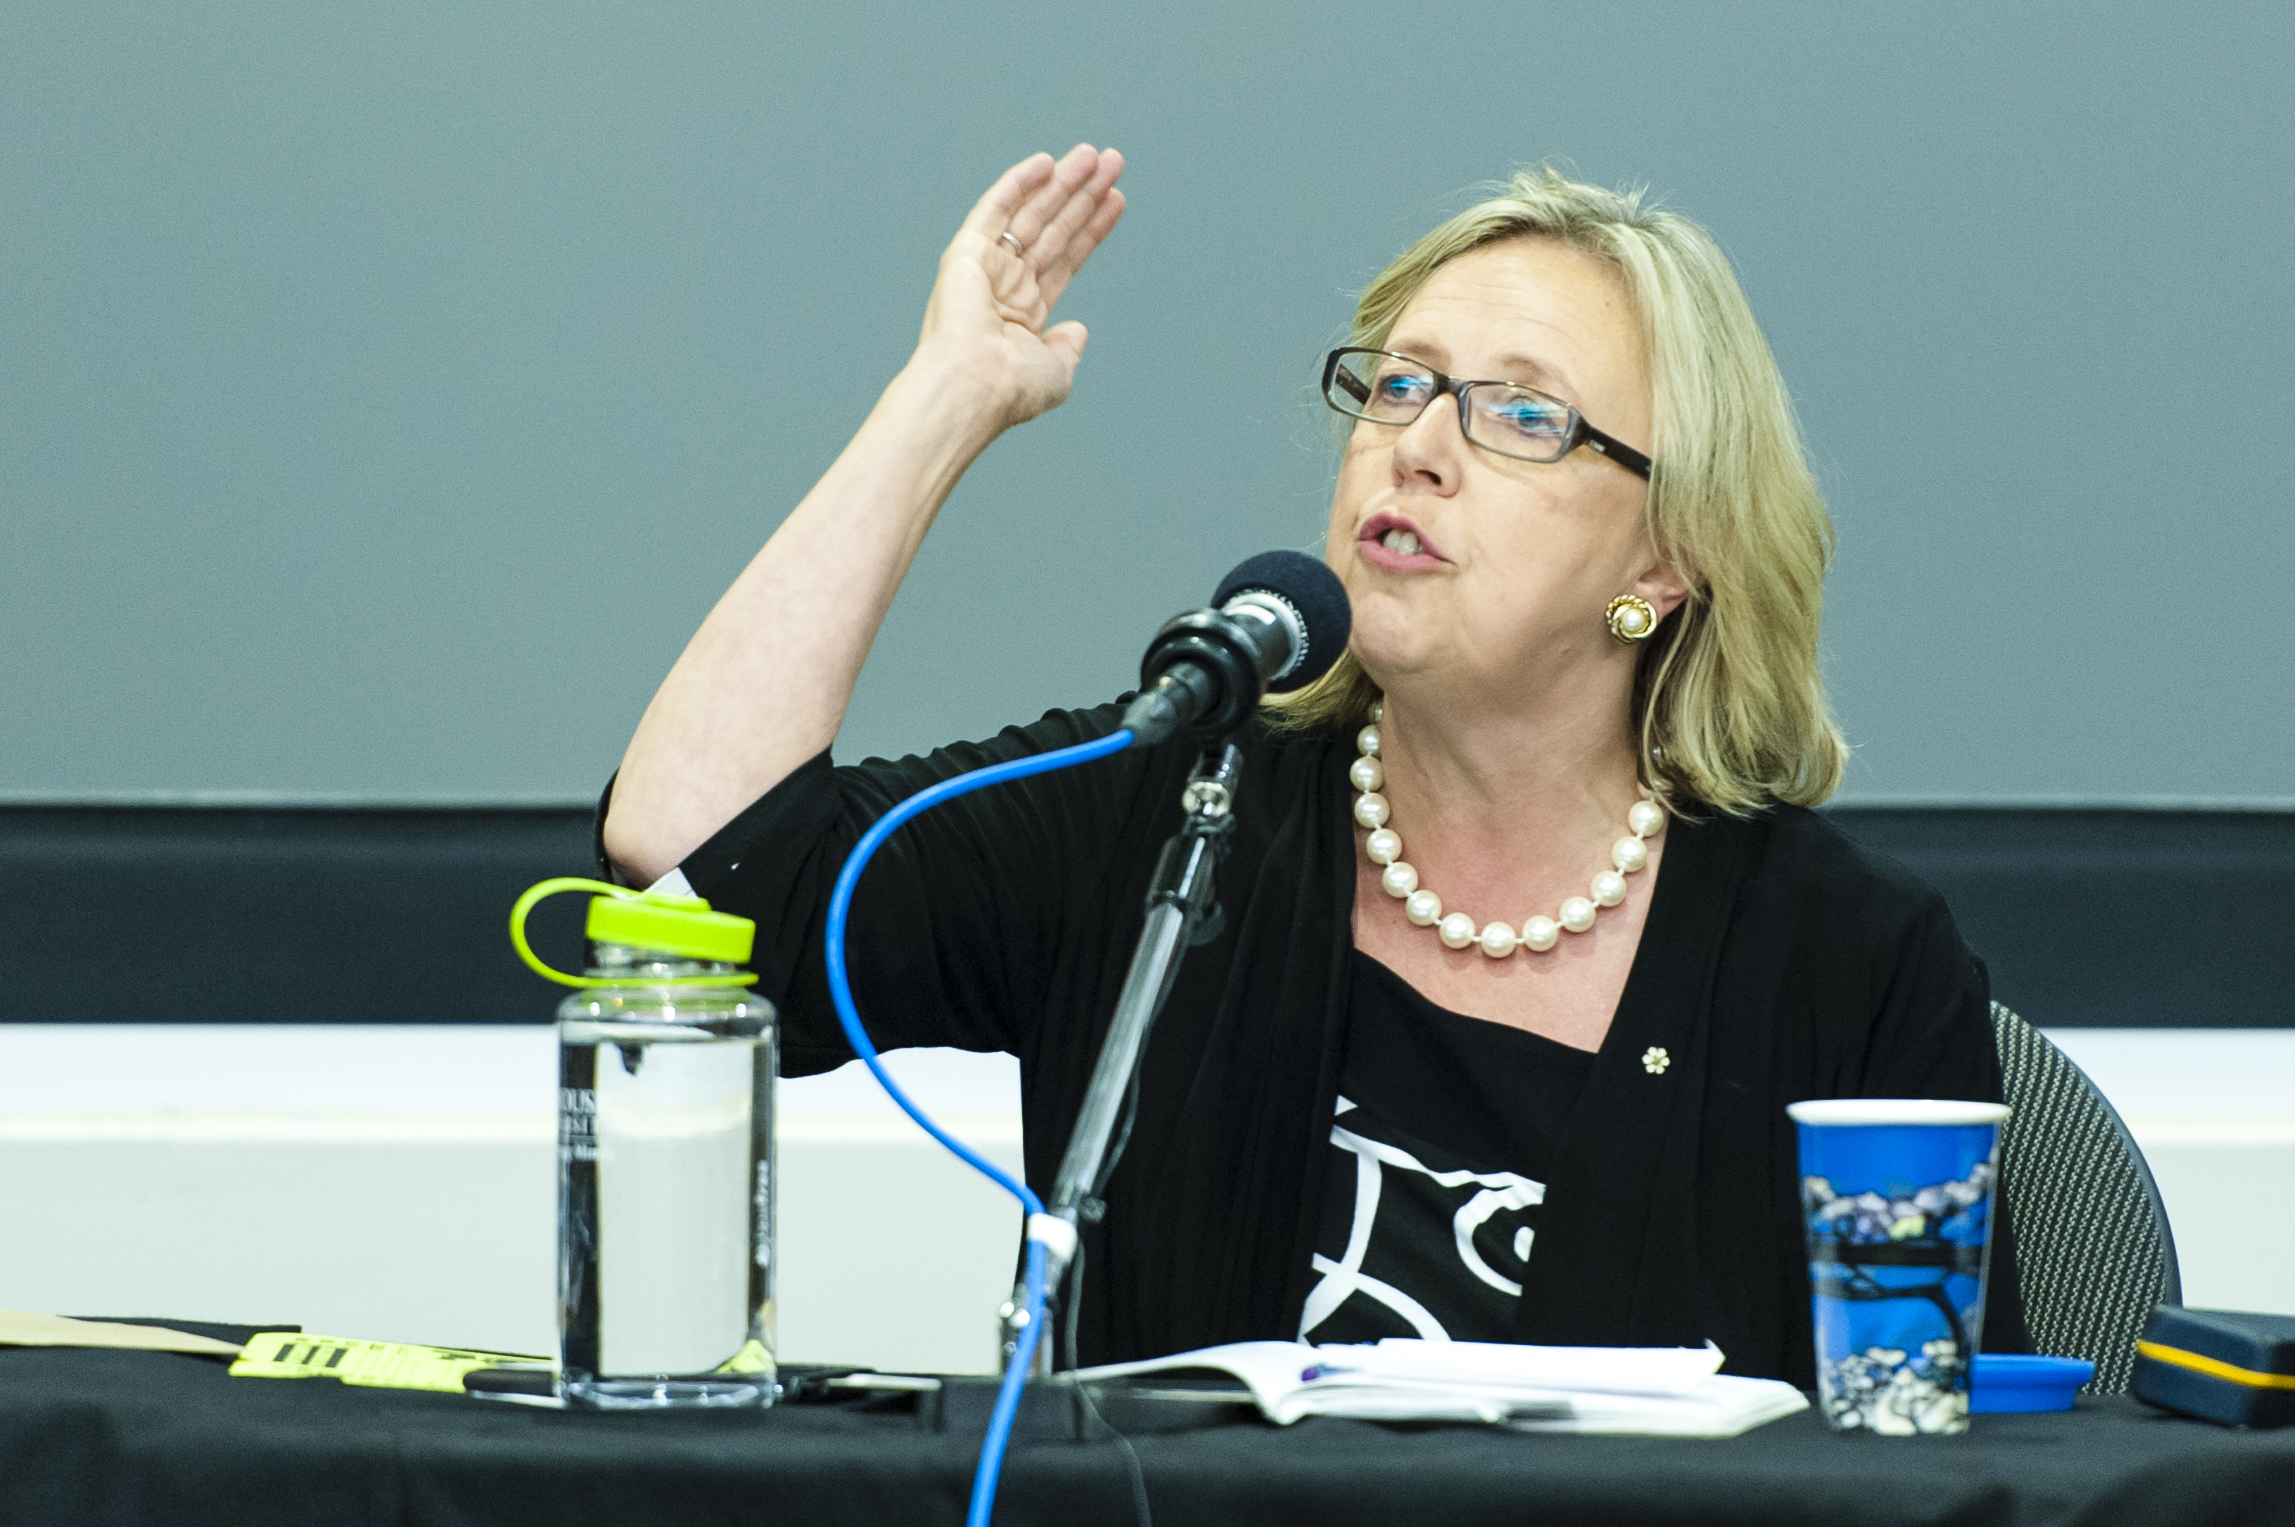 Elizabeth May debating party politics at an event on campus last week. (Chris Parent photo)